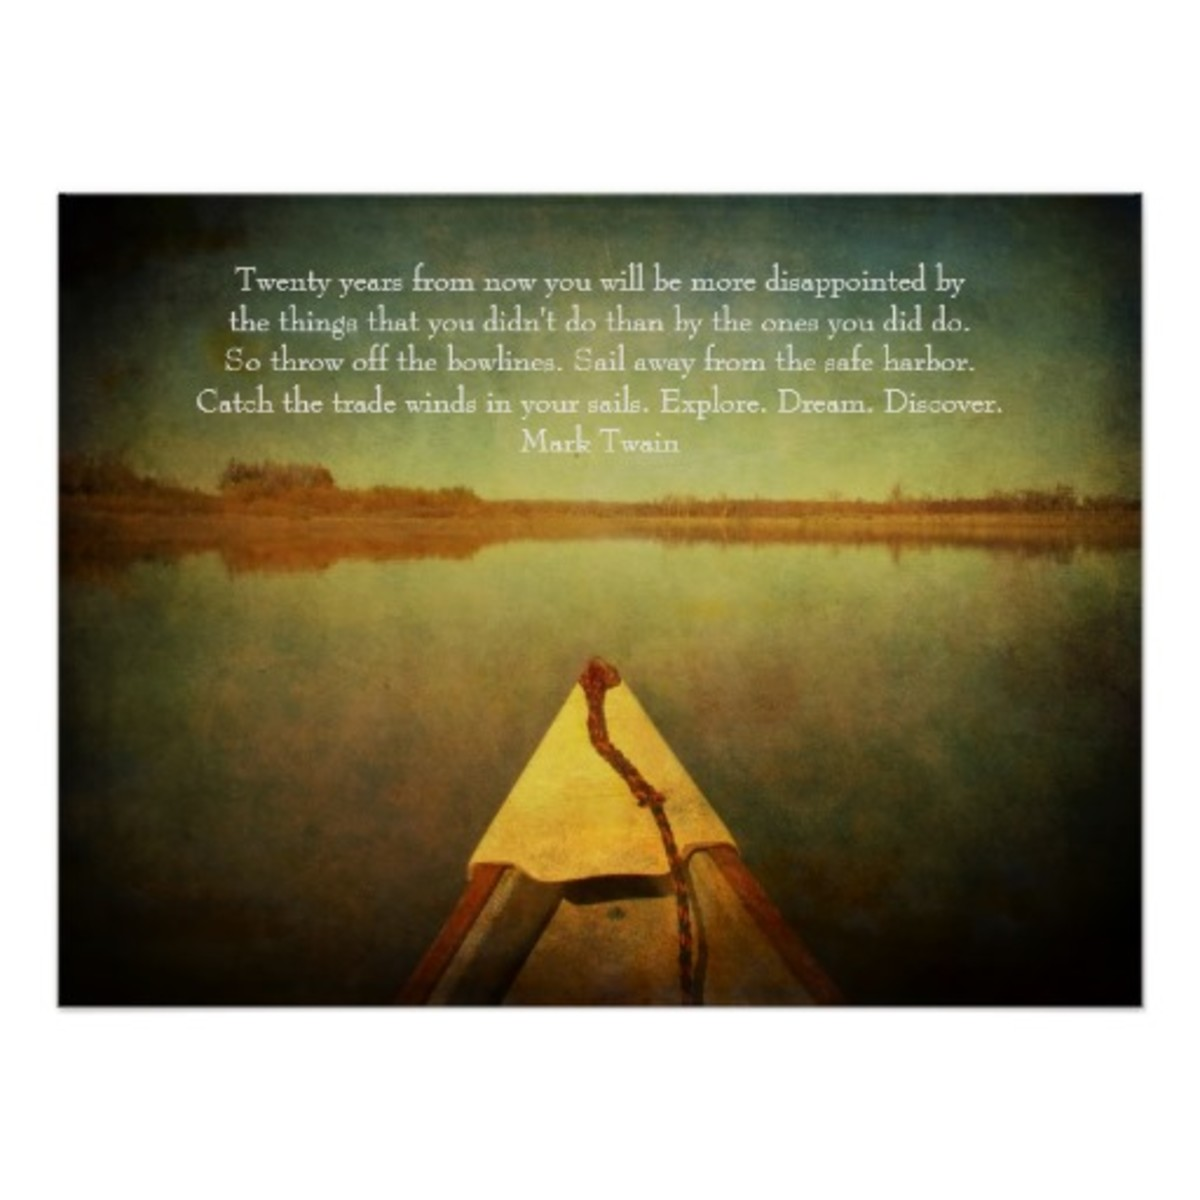 beautiful and serene water scene with boat hull pointing toward the horizon with Mark Twain motivational quote